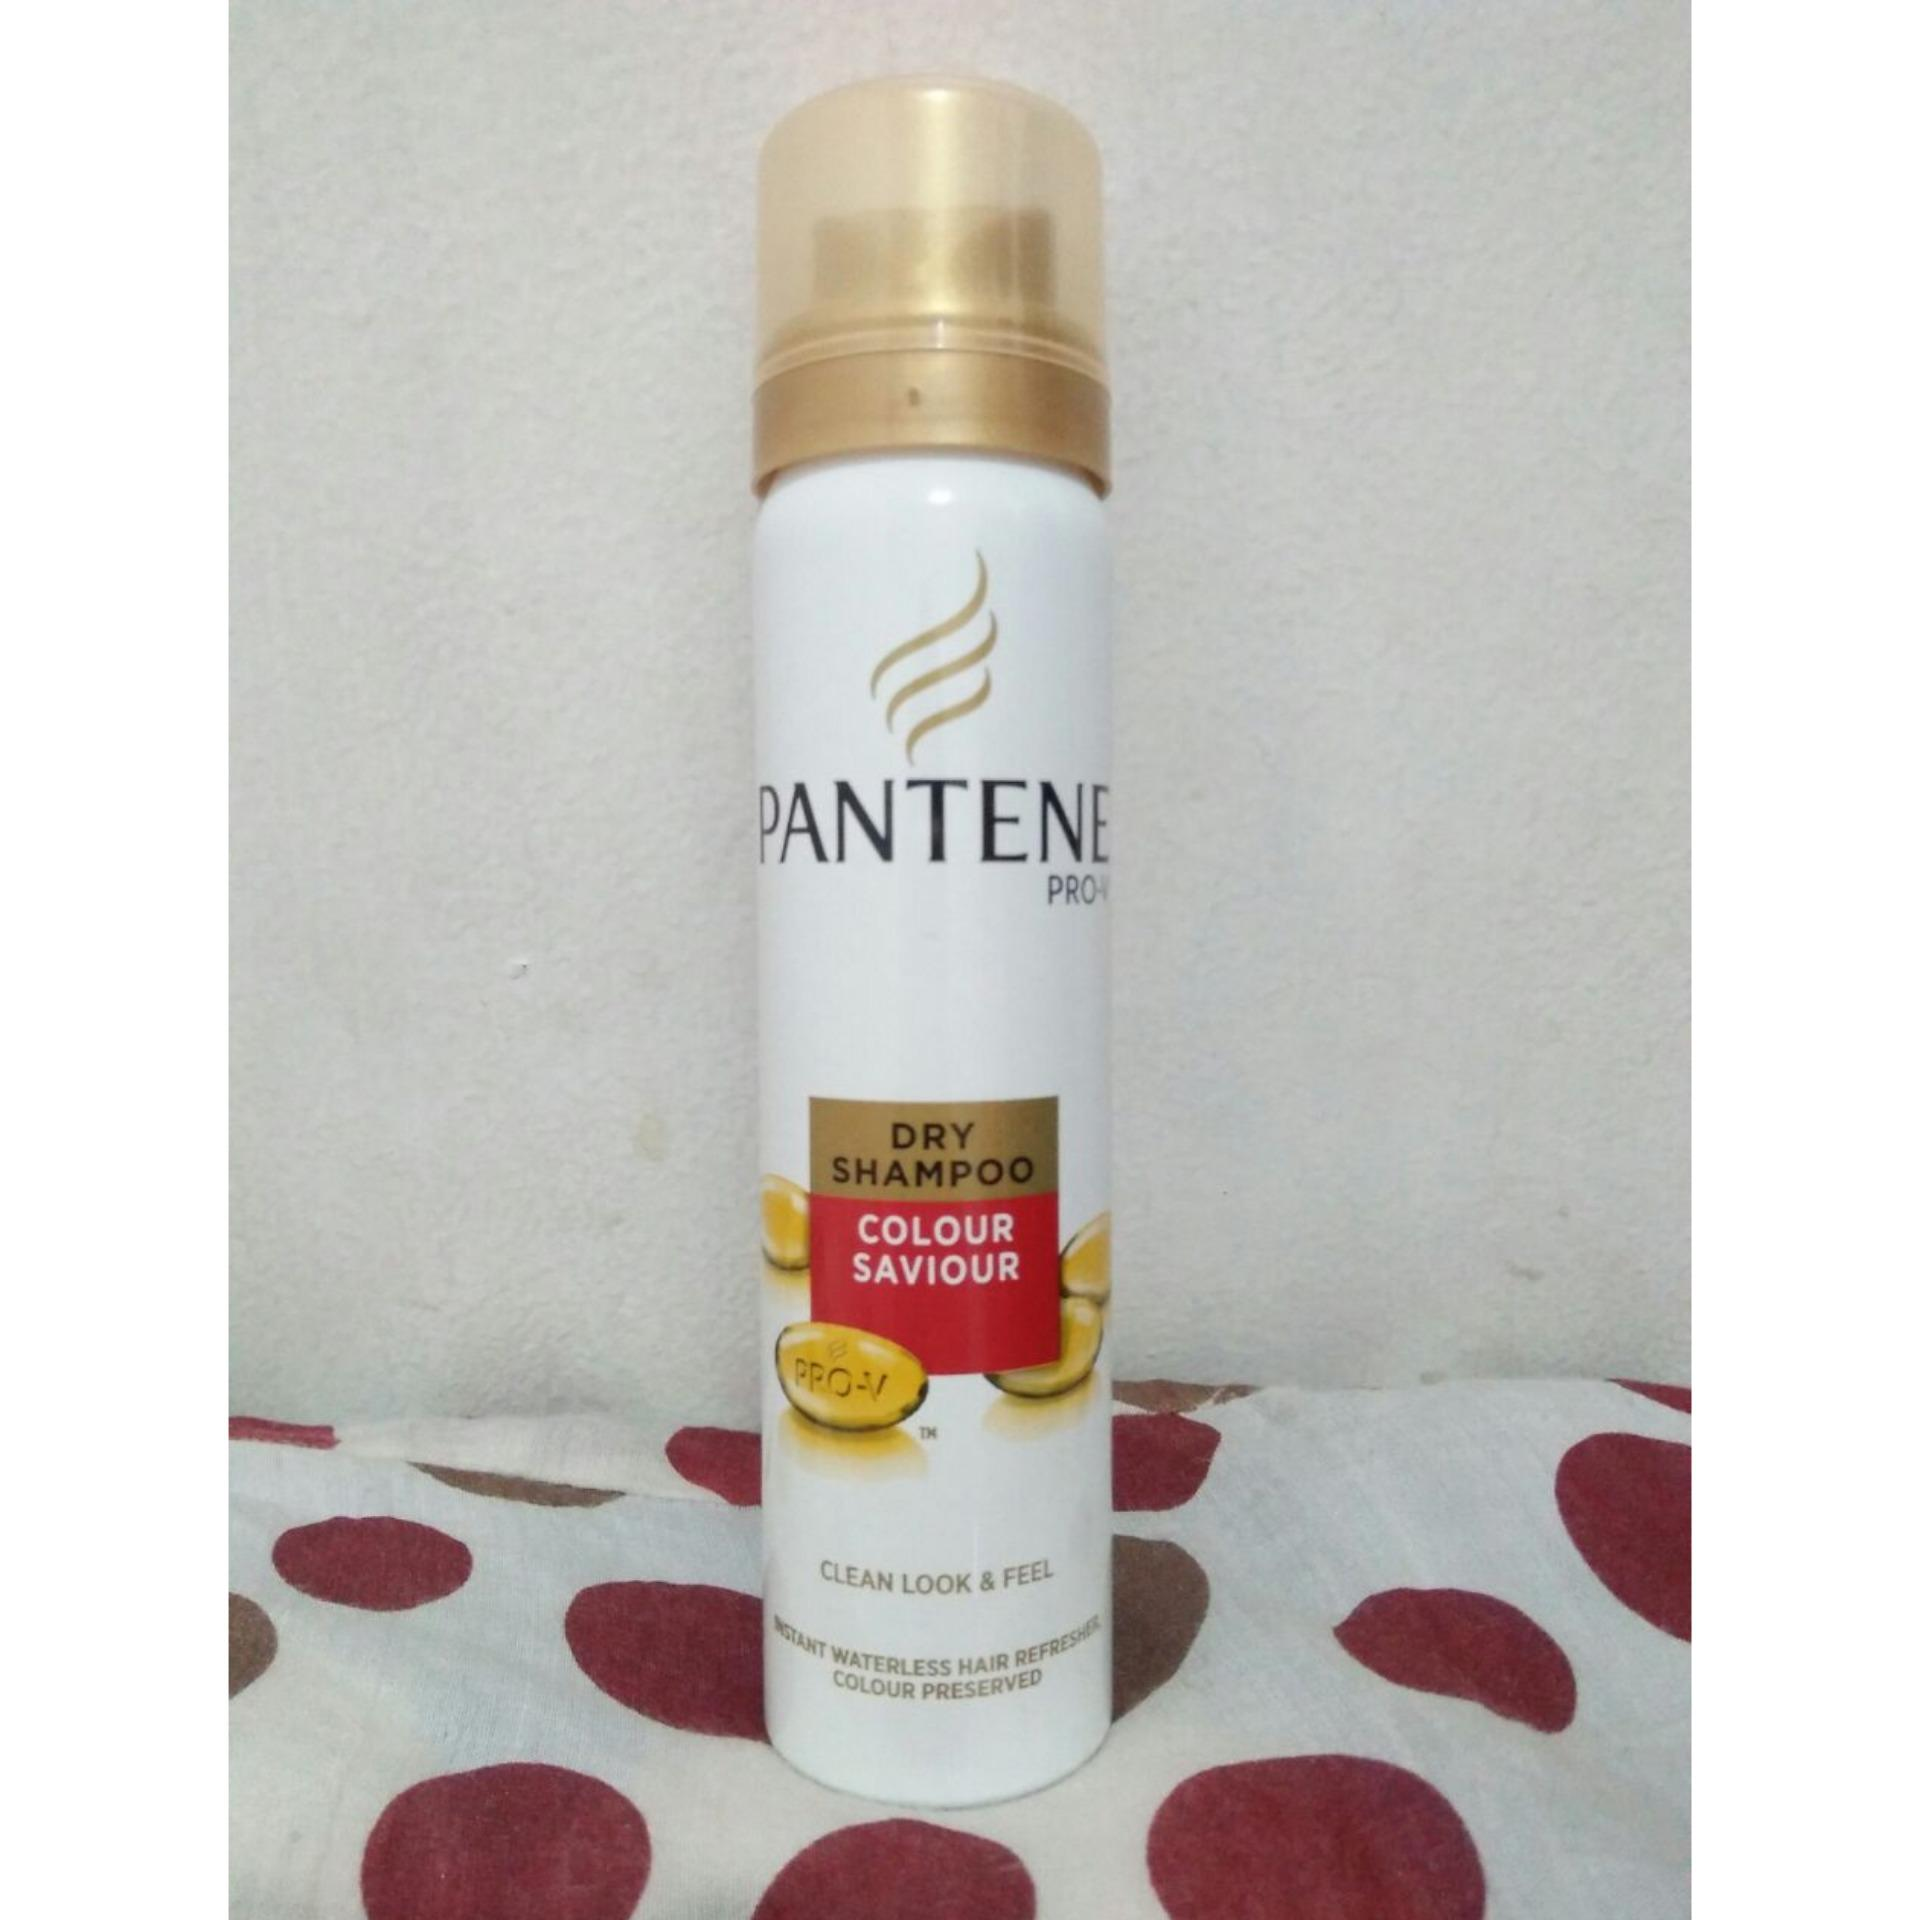 sales promotion for pantene Pantene shampoo keep your hair healthy and manageable with a pantene shampoo  whether you need to tame curls, control frizz or hydrate your hair, try one of the pantene pro-v shampoo formulas to help.